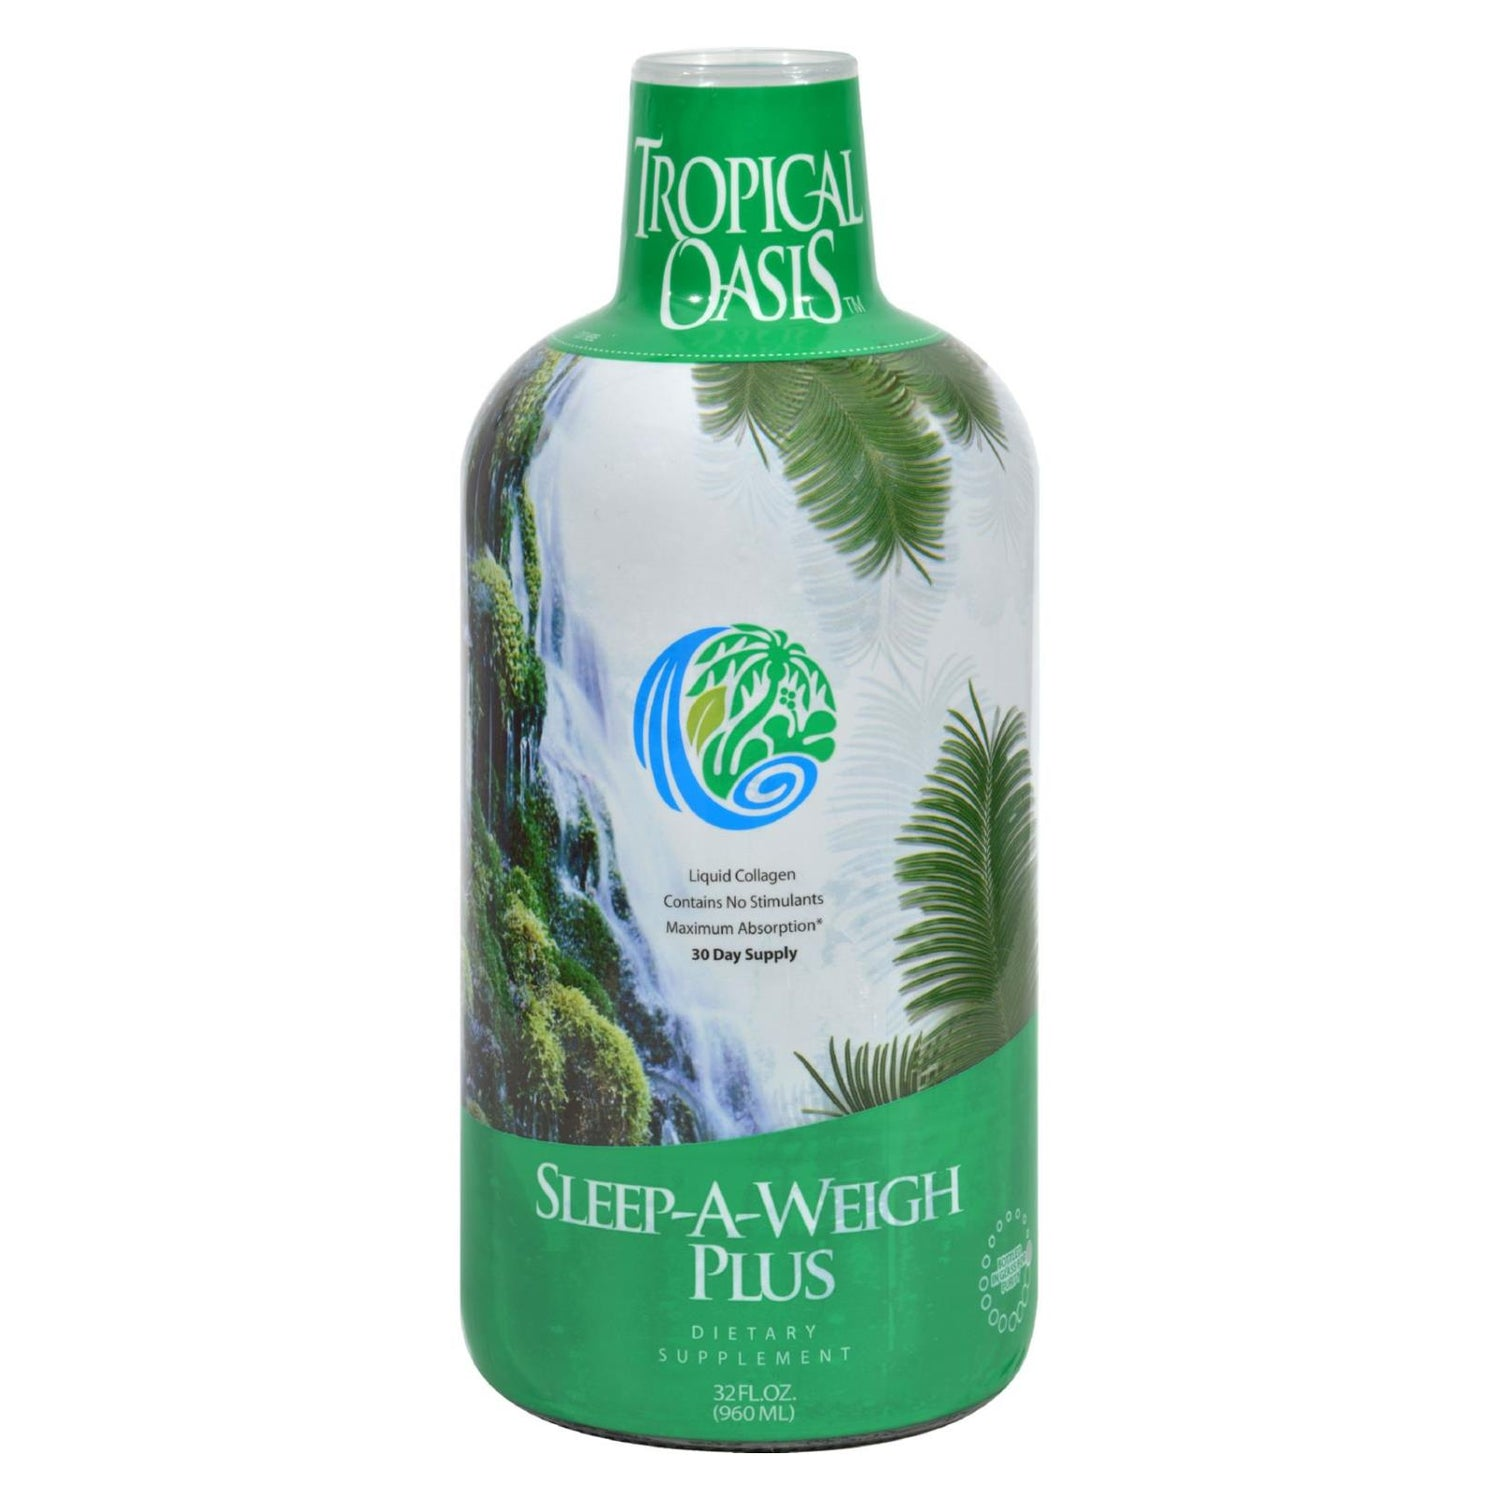 Tropical Oasis Sleep-a-weigh Plus - 32 Fl Oz